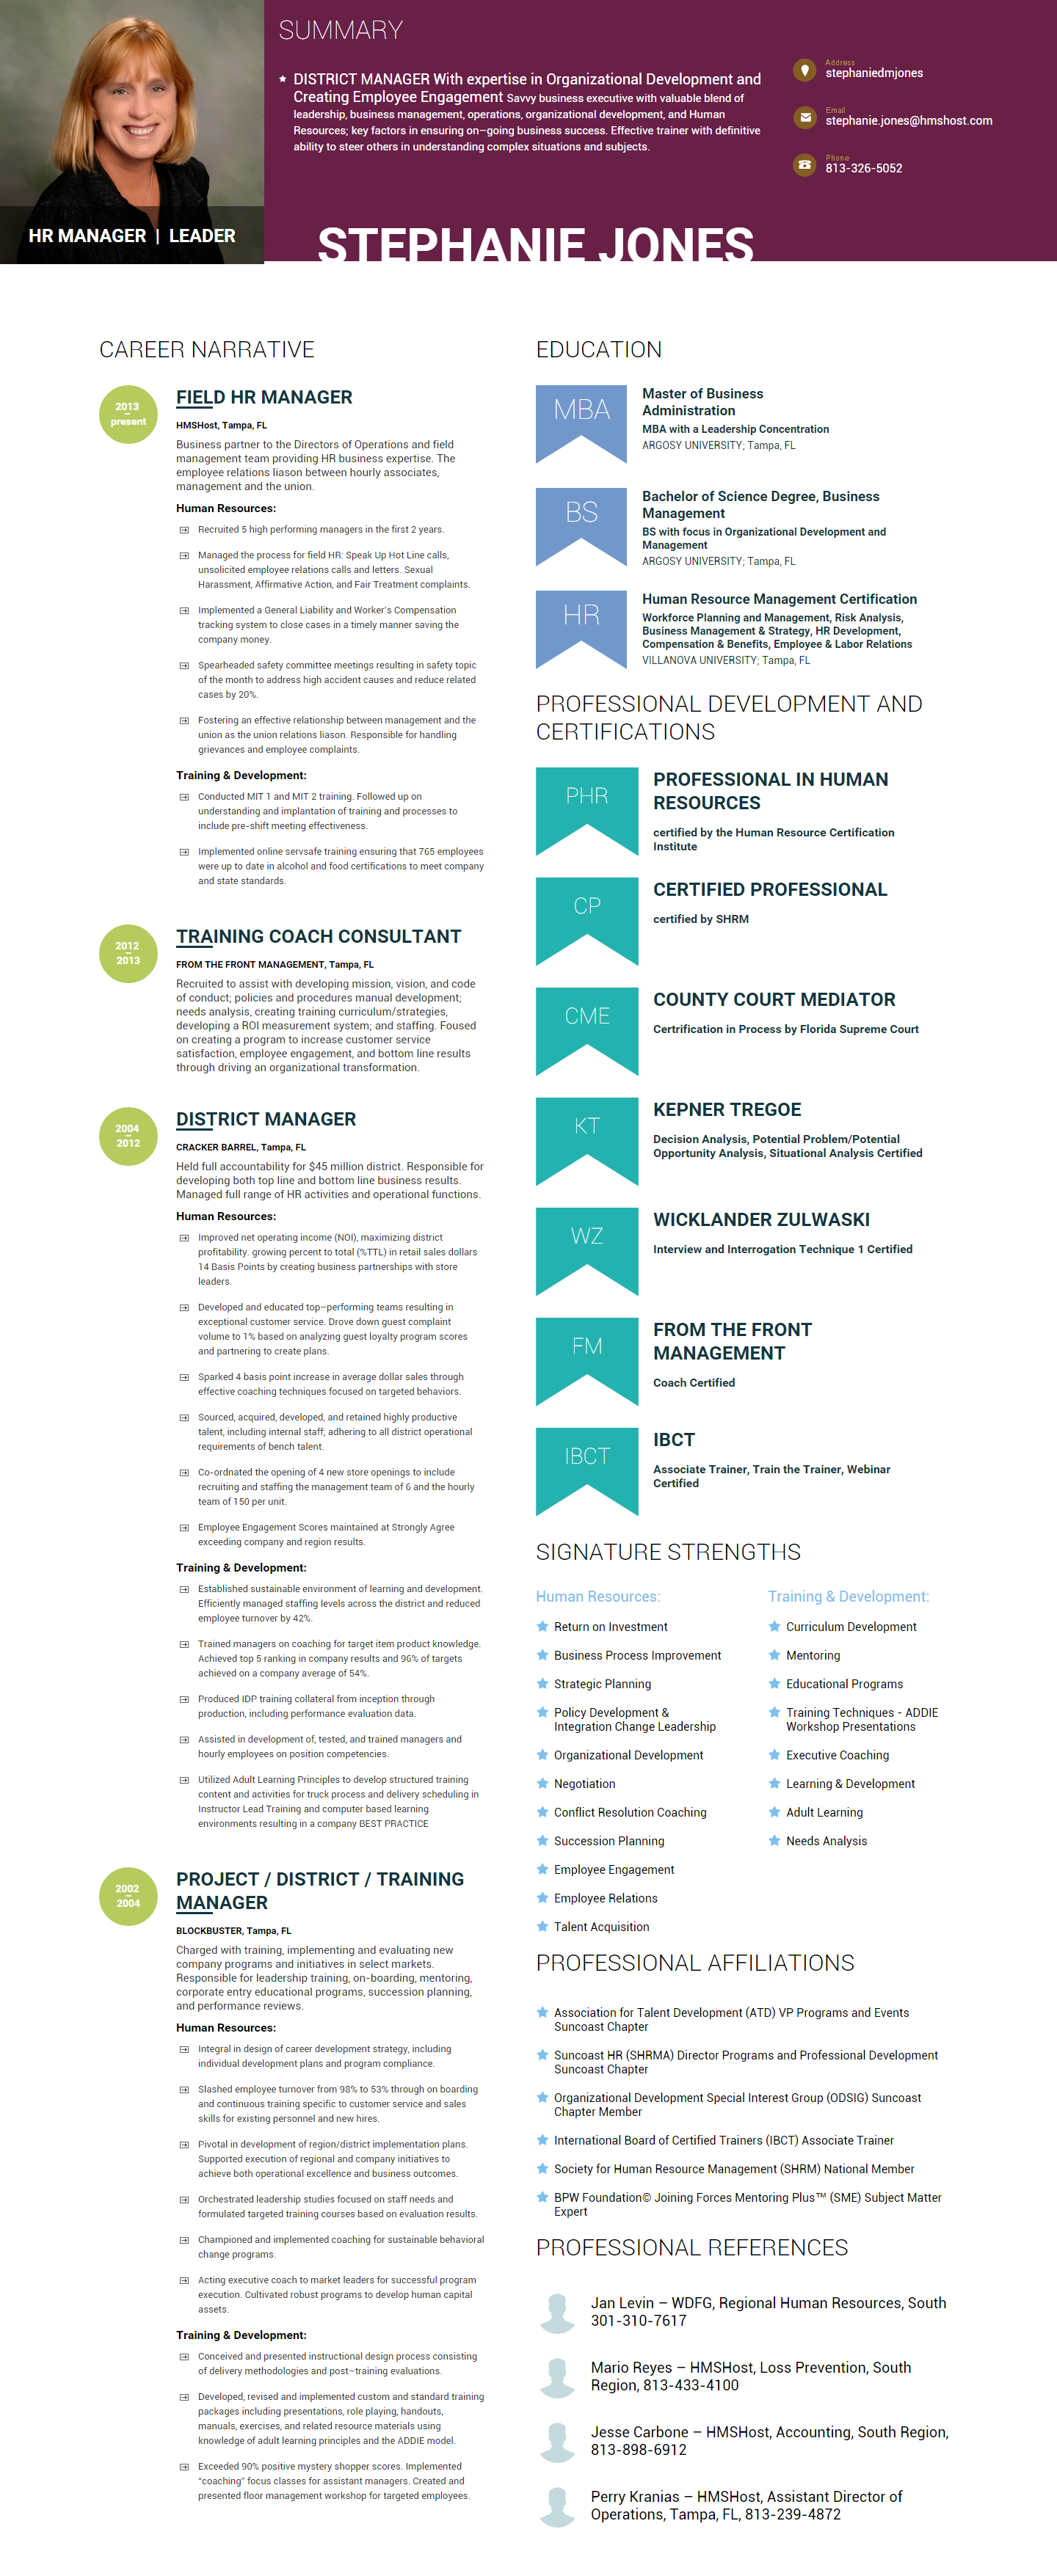 Infographic Resume Of Stephanie Jones Hr Manager With Expertise